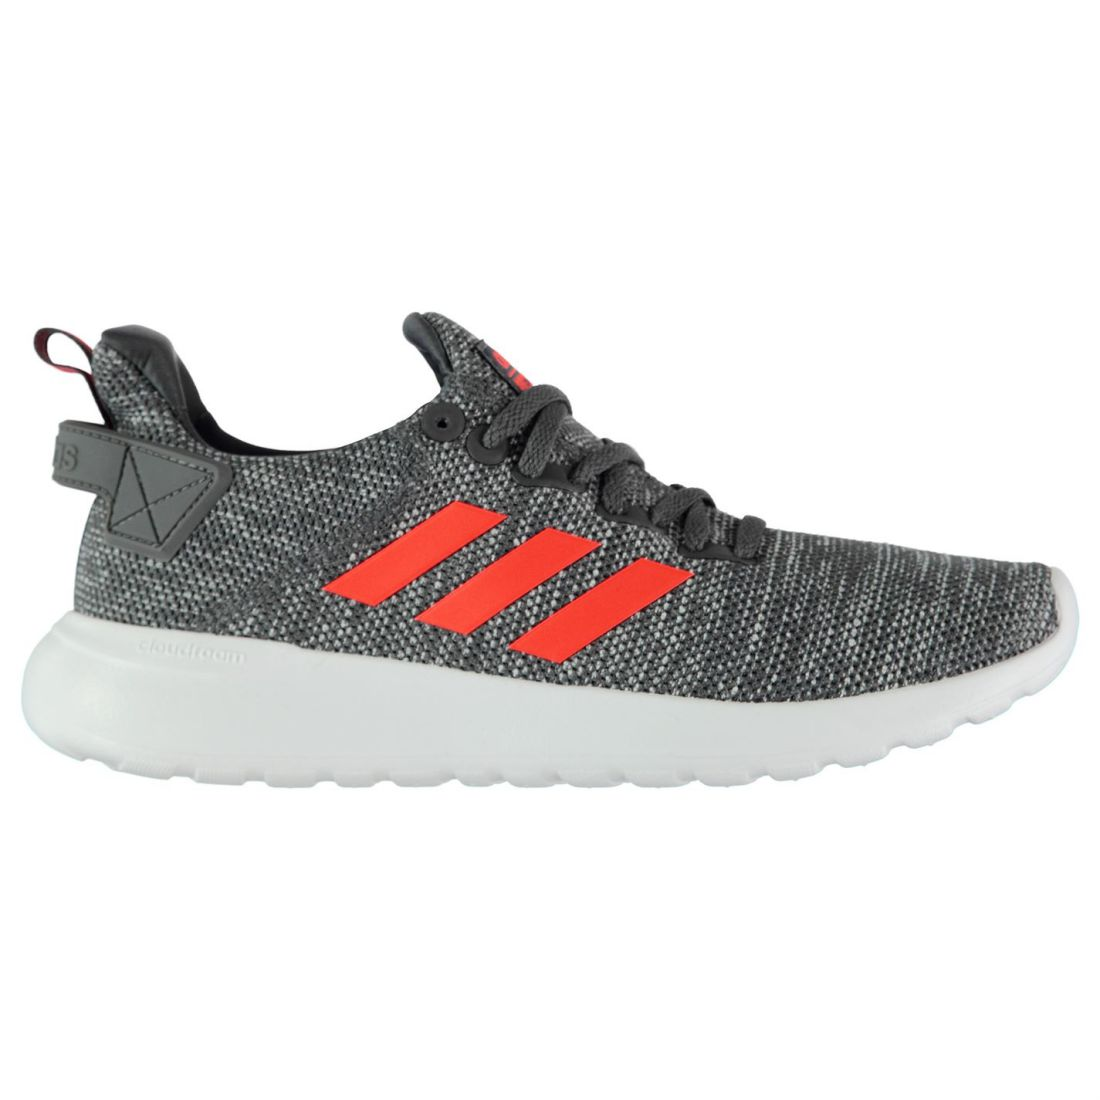 ccd2de96855 adidas CloudFoam Lite Racer BYD Sneakers Mens Gents Runners Laces ...